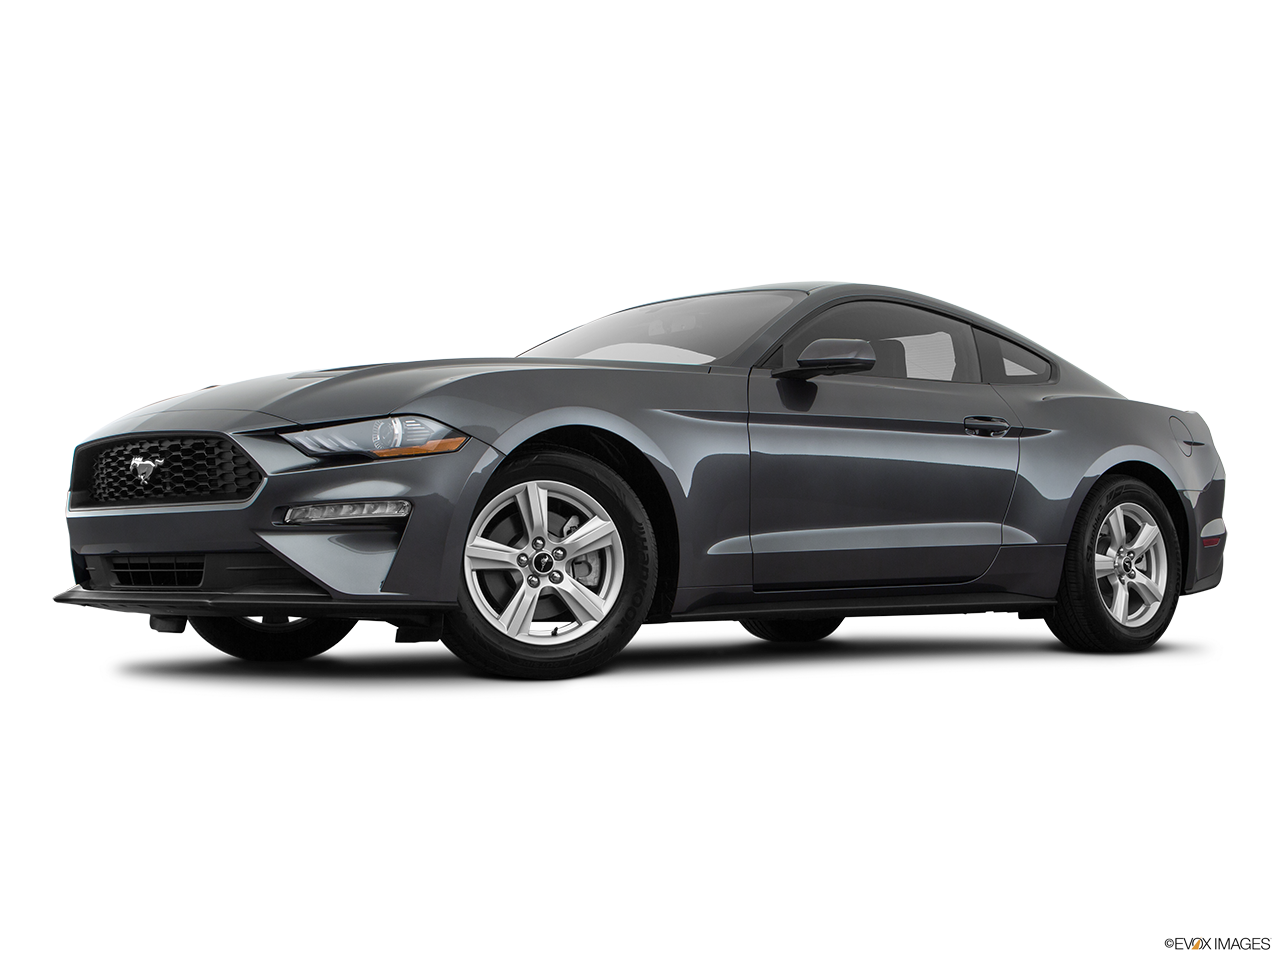 2019 Ford Mustang photo